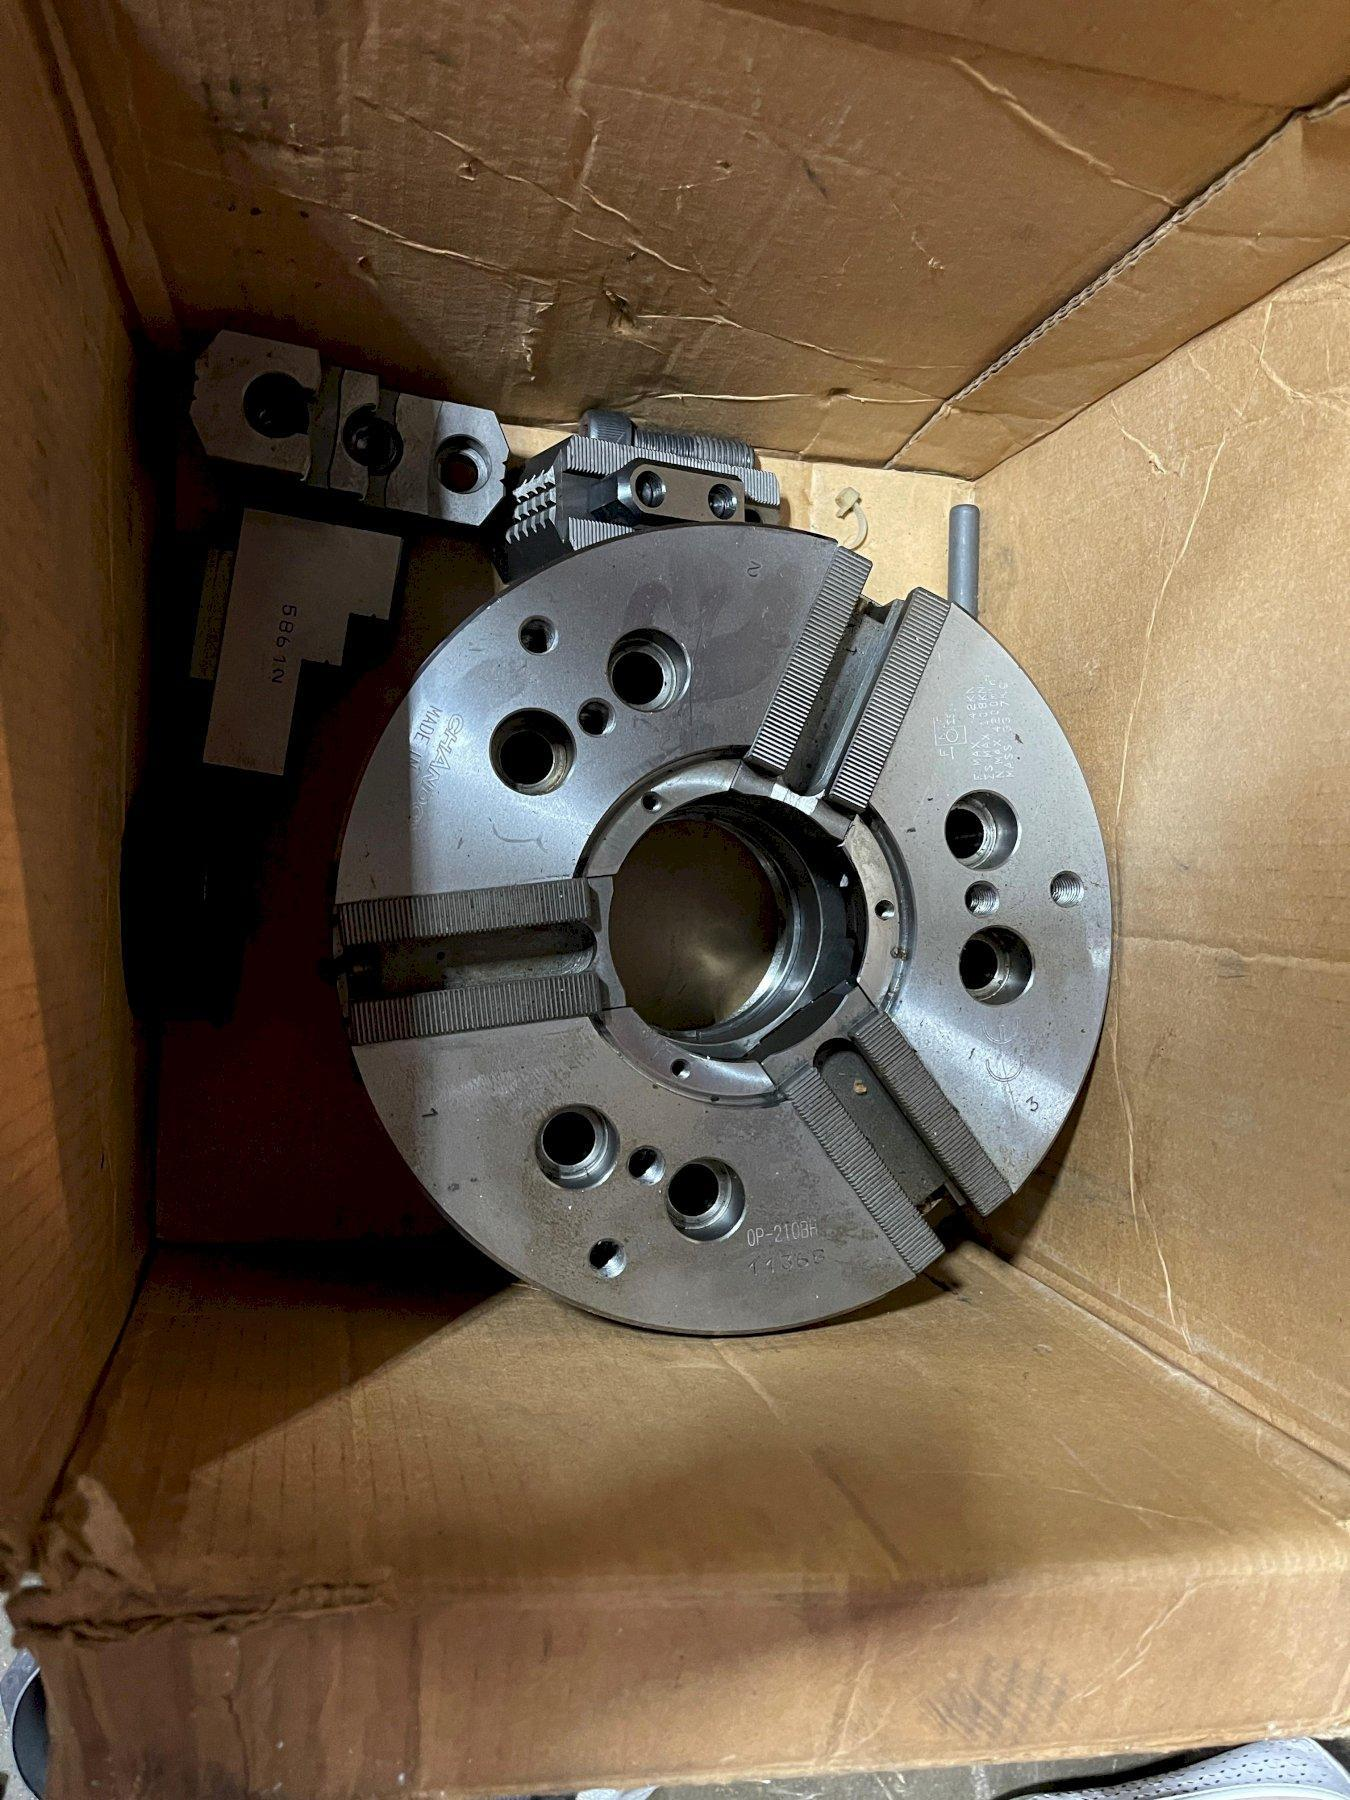 """10"""" CHANDOX OP-210BH 3-JAW HIGH SPEED HOLLOW POWER CHUCK, 78mm/3"""" Hole, 9mm/0.35"""" Jaw Stroke, A2-8 Spindle Nose, 4200 RPM Max Speed, 108 kN Clamp Force."""